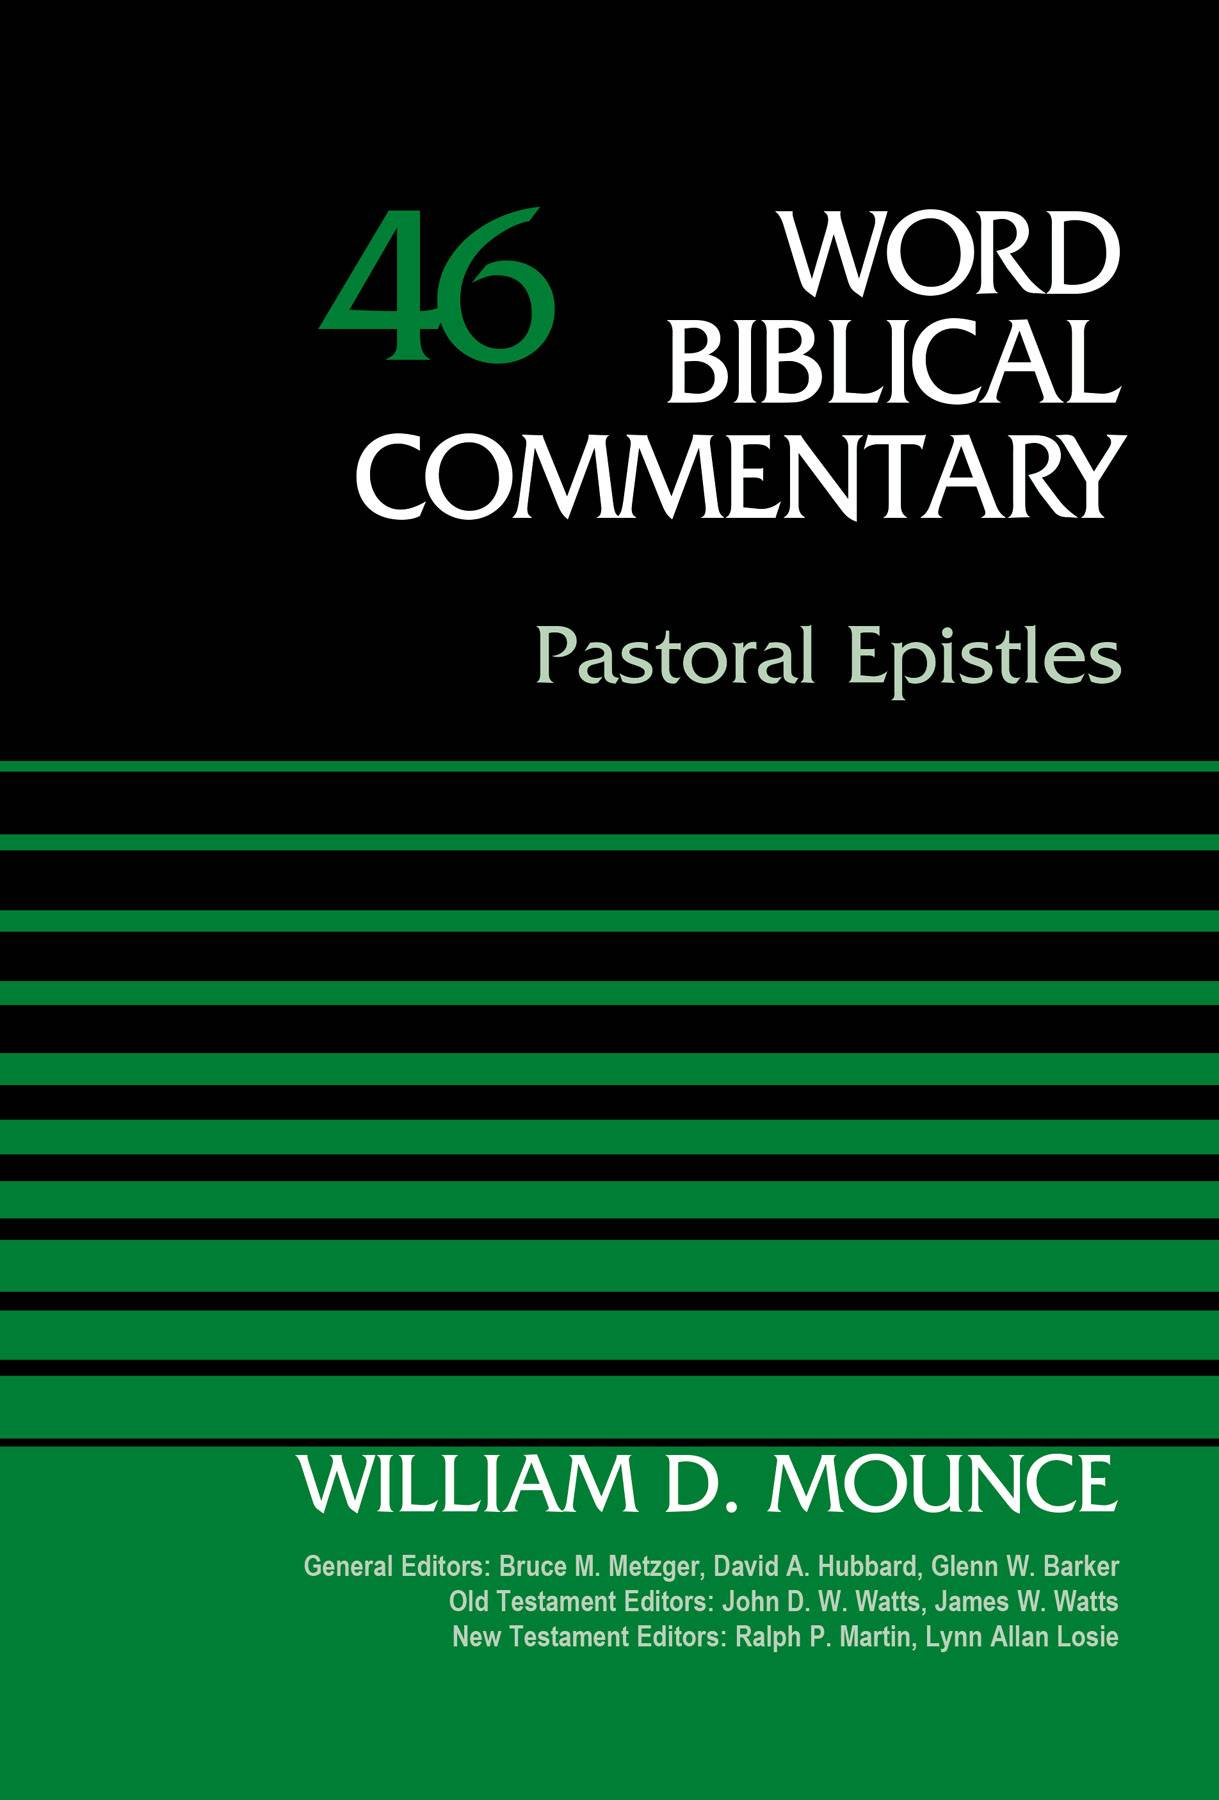 Pastoral Epistles, Volume 46 (Word Biblical Commentary)